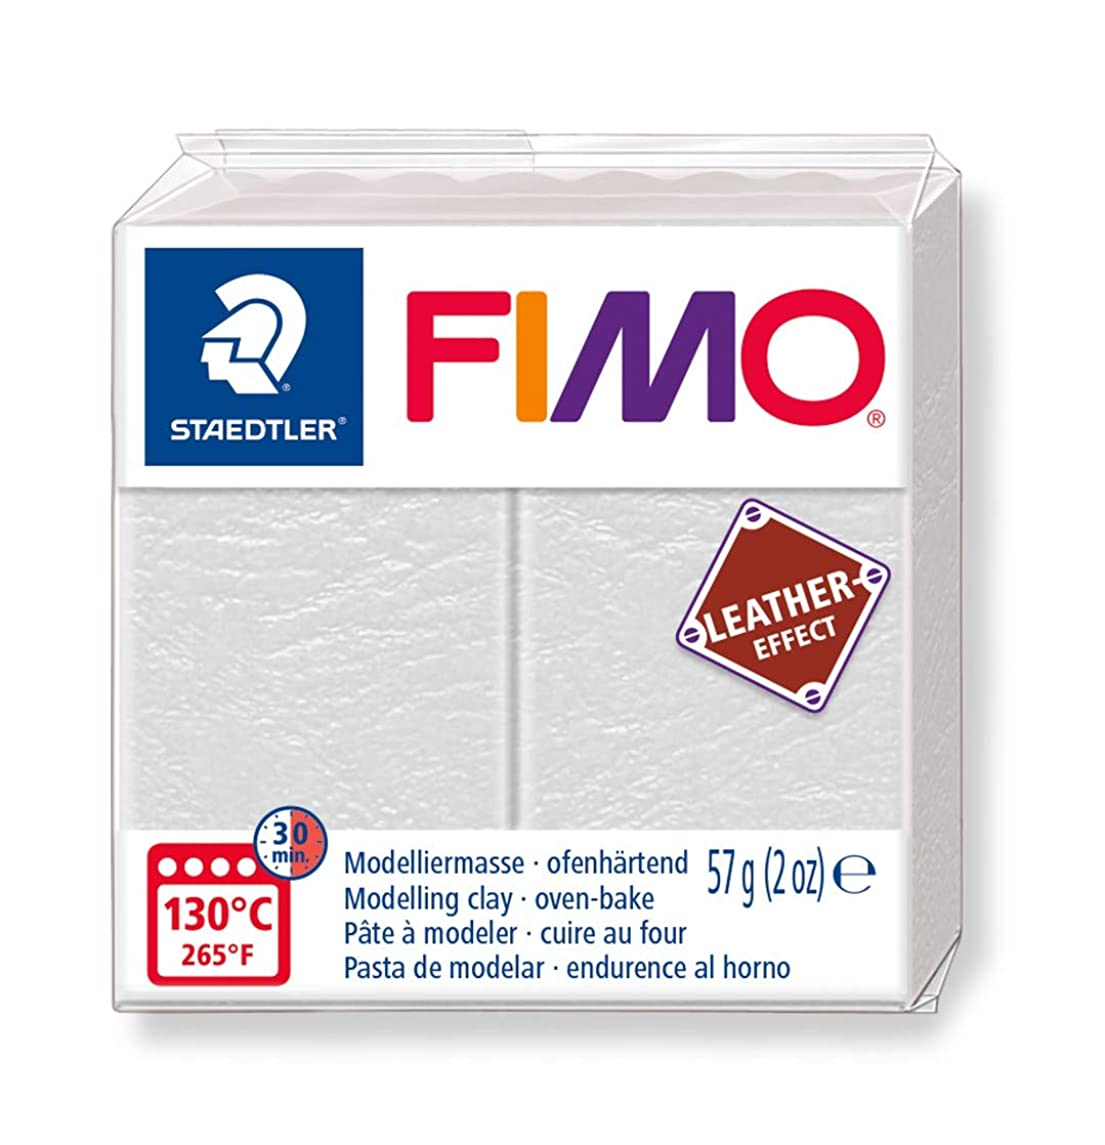 STAEDTLER 8010-029 ST FIMO Leather-Effect Oven-Hardening Modelling Clay for Creative Objects Leather Look Leather Look and Feel Ivory Colour 8010-29